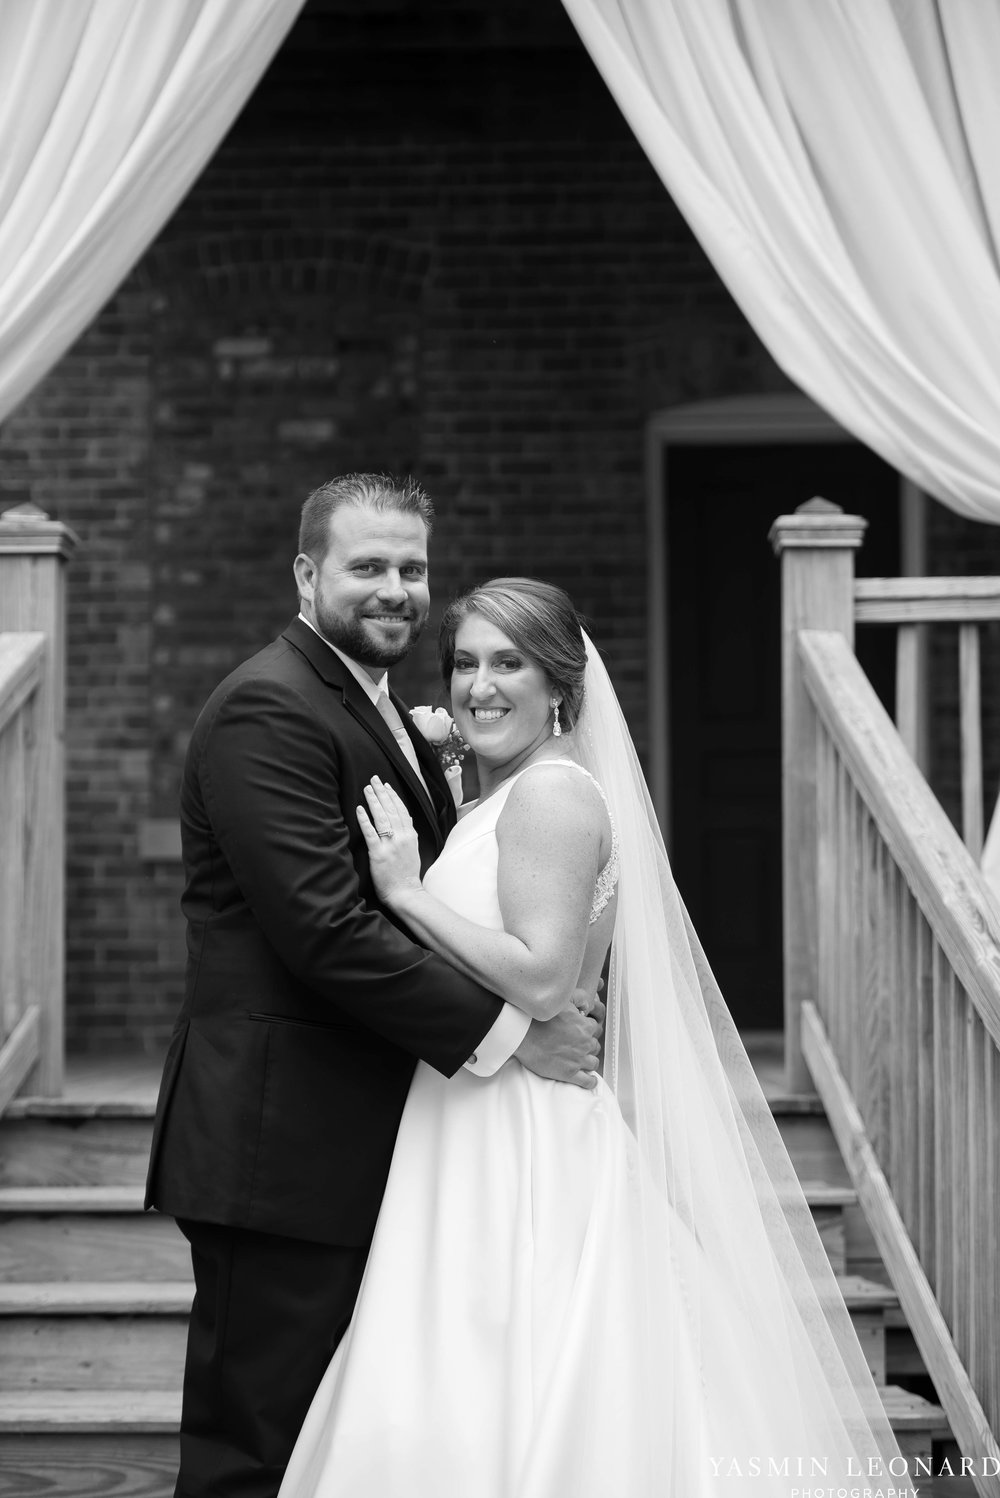 Wilmington Weddings - Brooklyn Arts Center - Downtown Wilmington Weddings - NC Beach Weddings - NC Wedding Photographer - NC Weddings - Wilmington Wedding Venues - Yasmin Leonard Photography-40.jpg